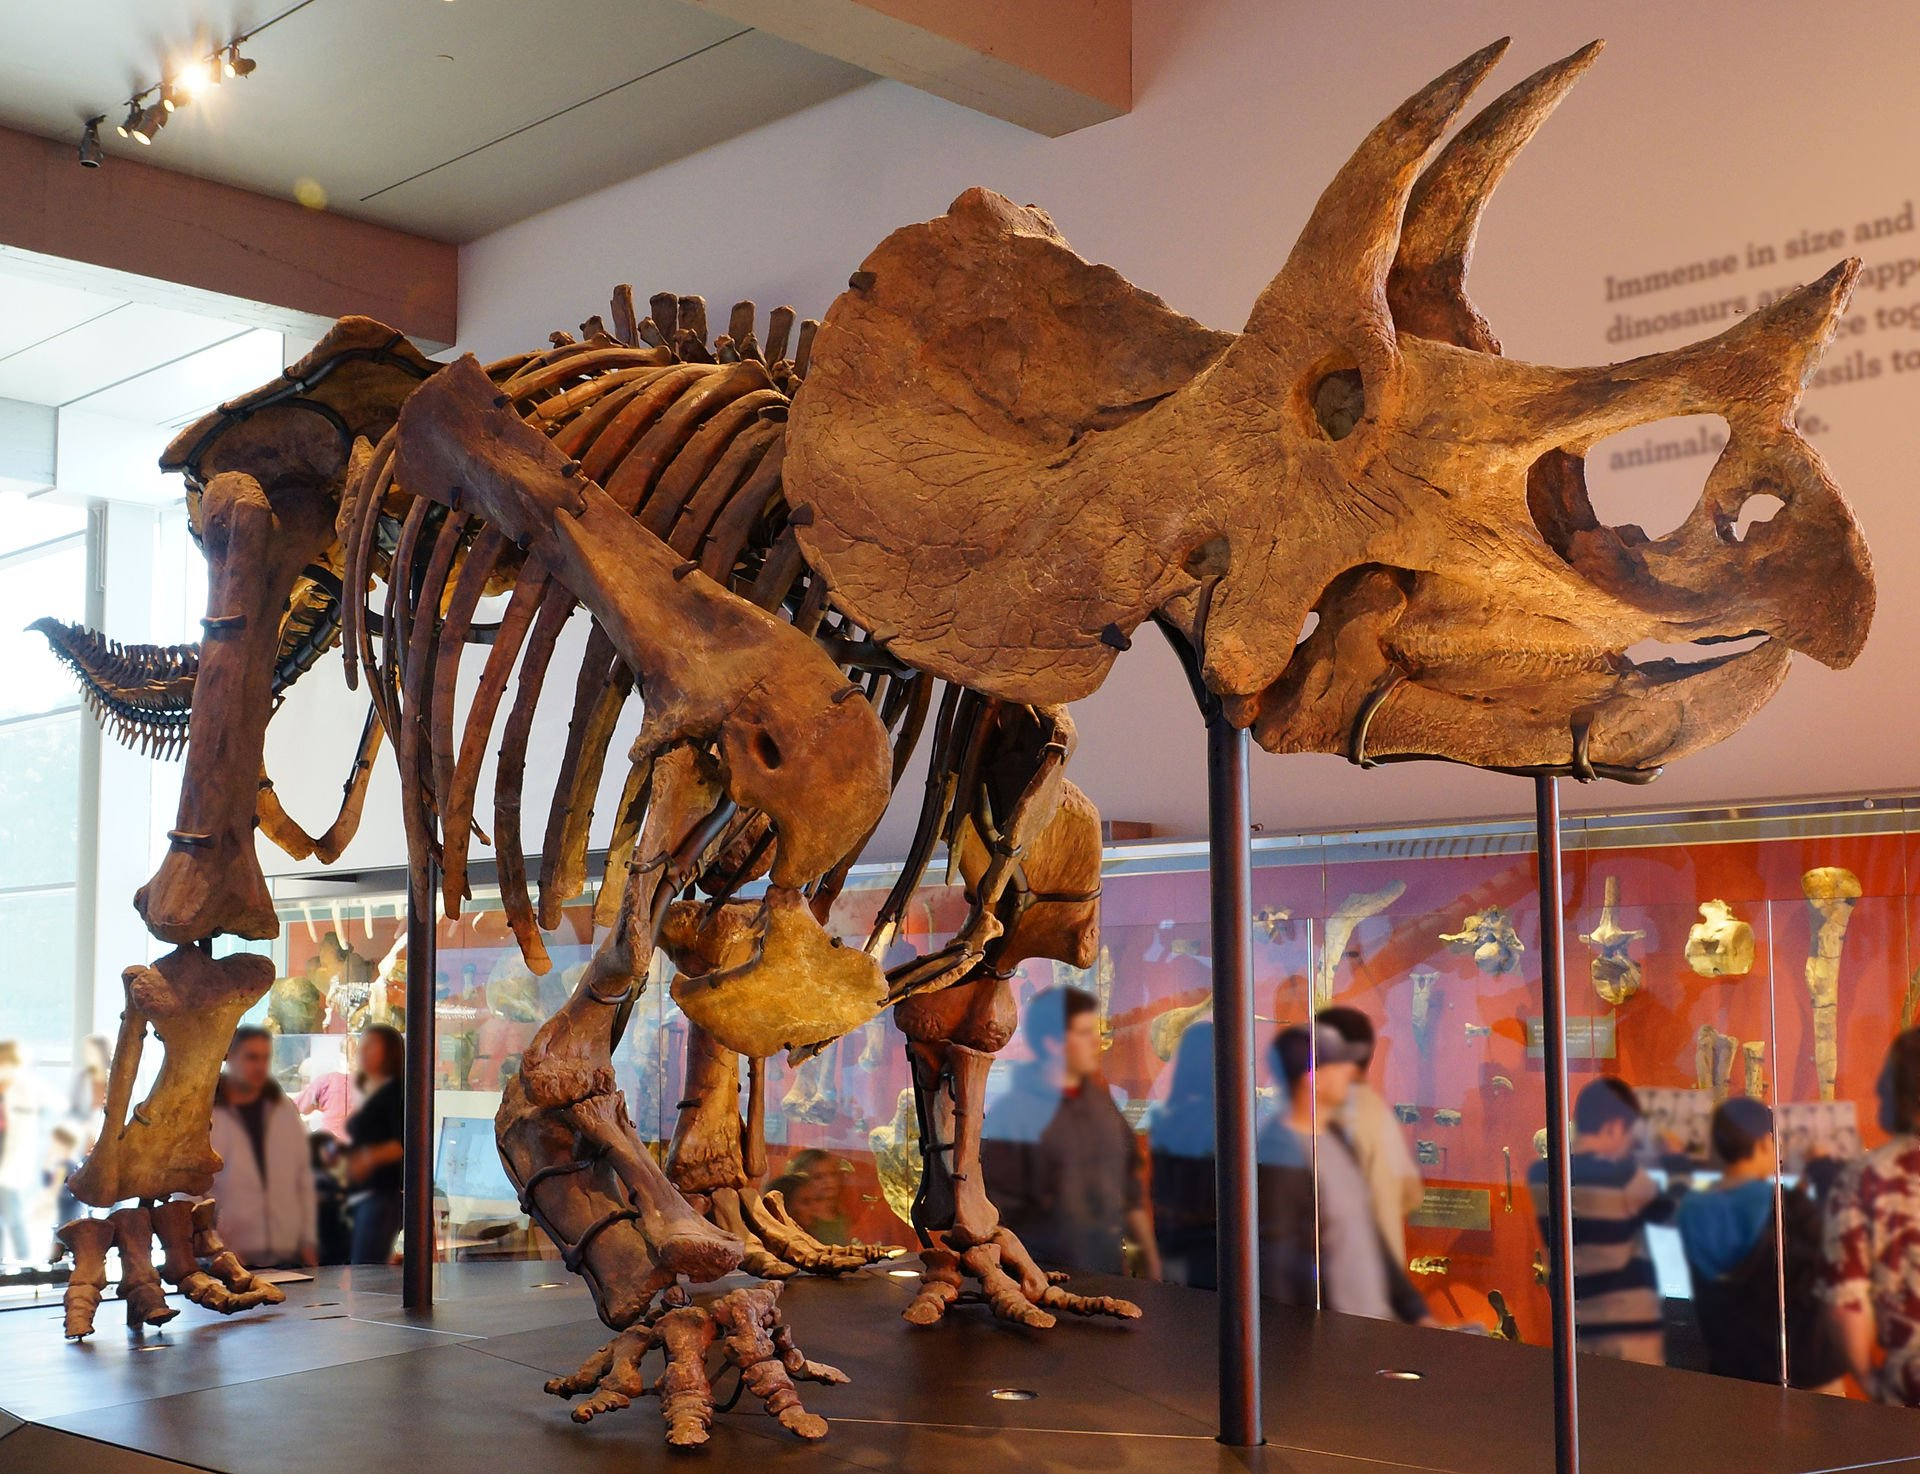 This triceratops skeleton is one of numerous dinosaurs on display at the museum.